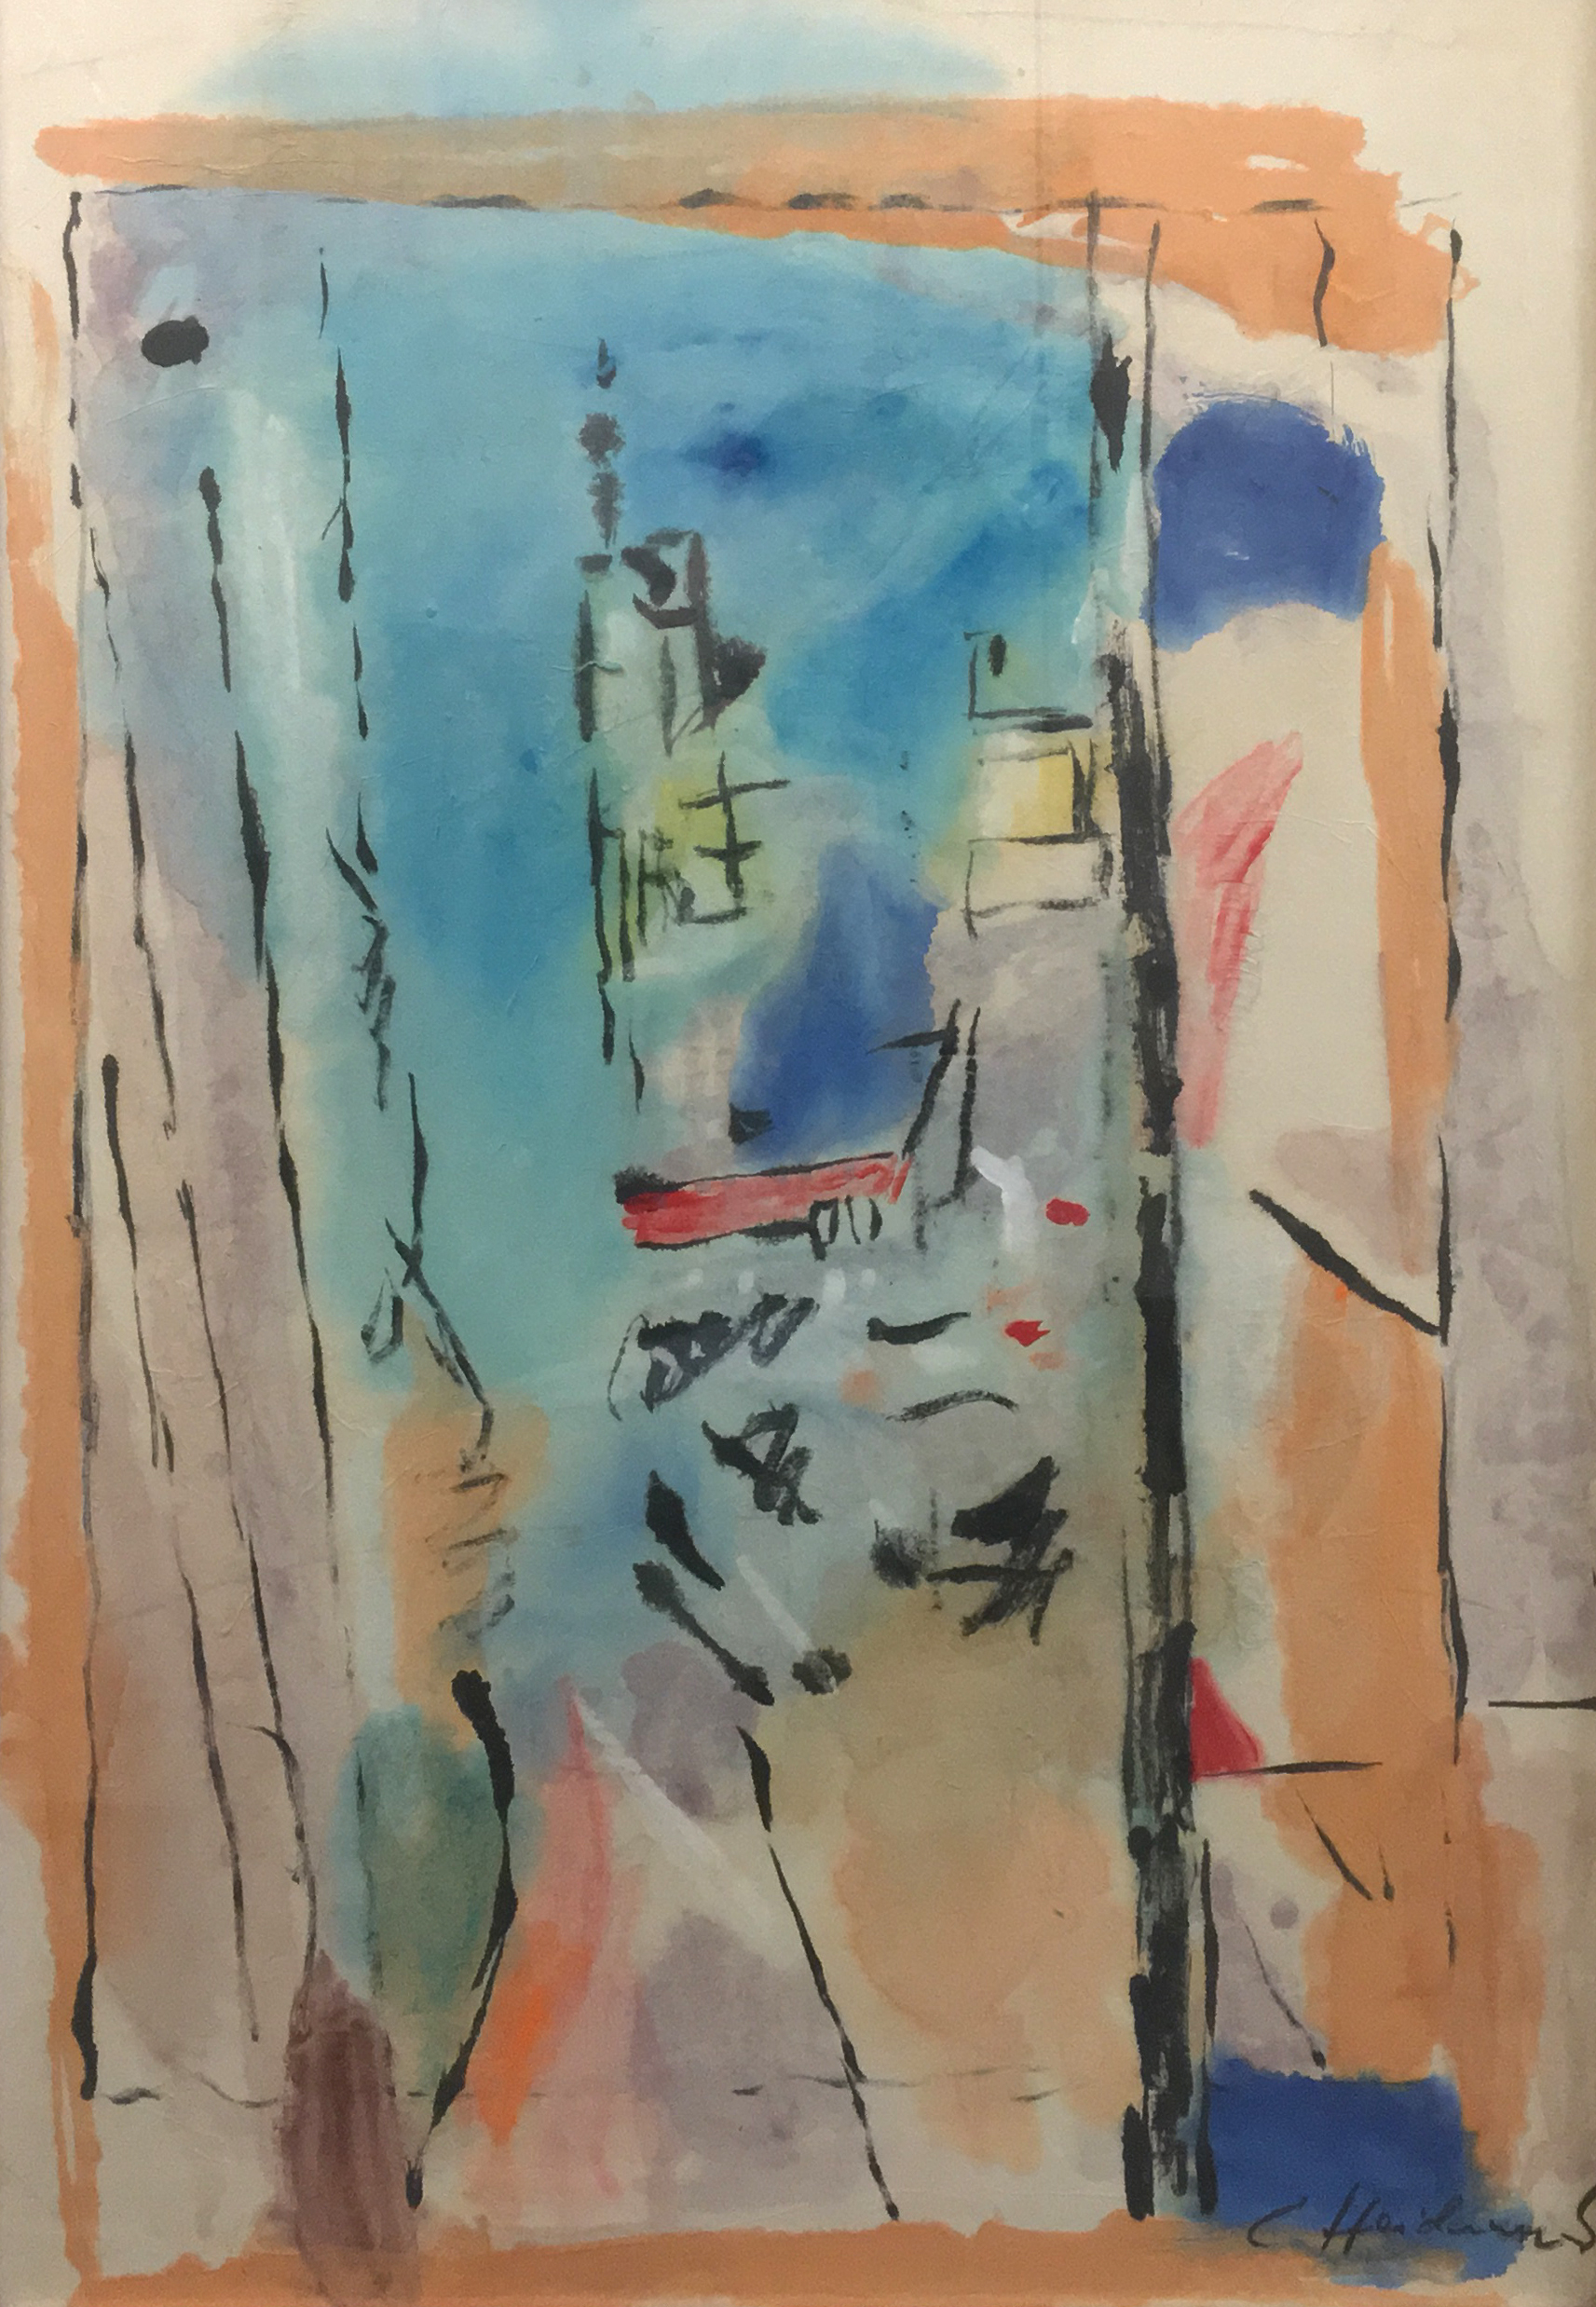 CARL HEIDENREICH,  WINDOW VIEW,  CIRCA 1960. MIXED MEDIA ON PAPER. 32 X 23 INCHES. COLLECTION OF THE CARL HEIDENREICH FOUNDATION.